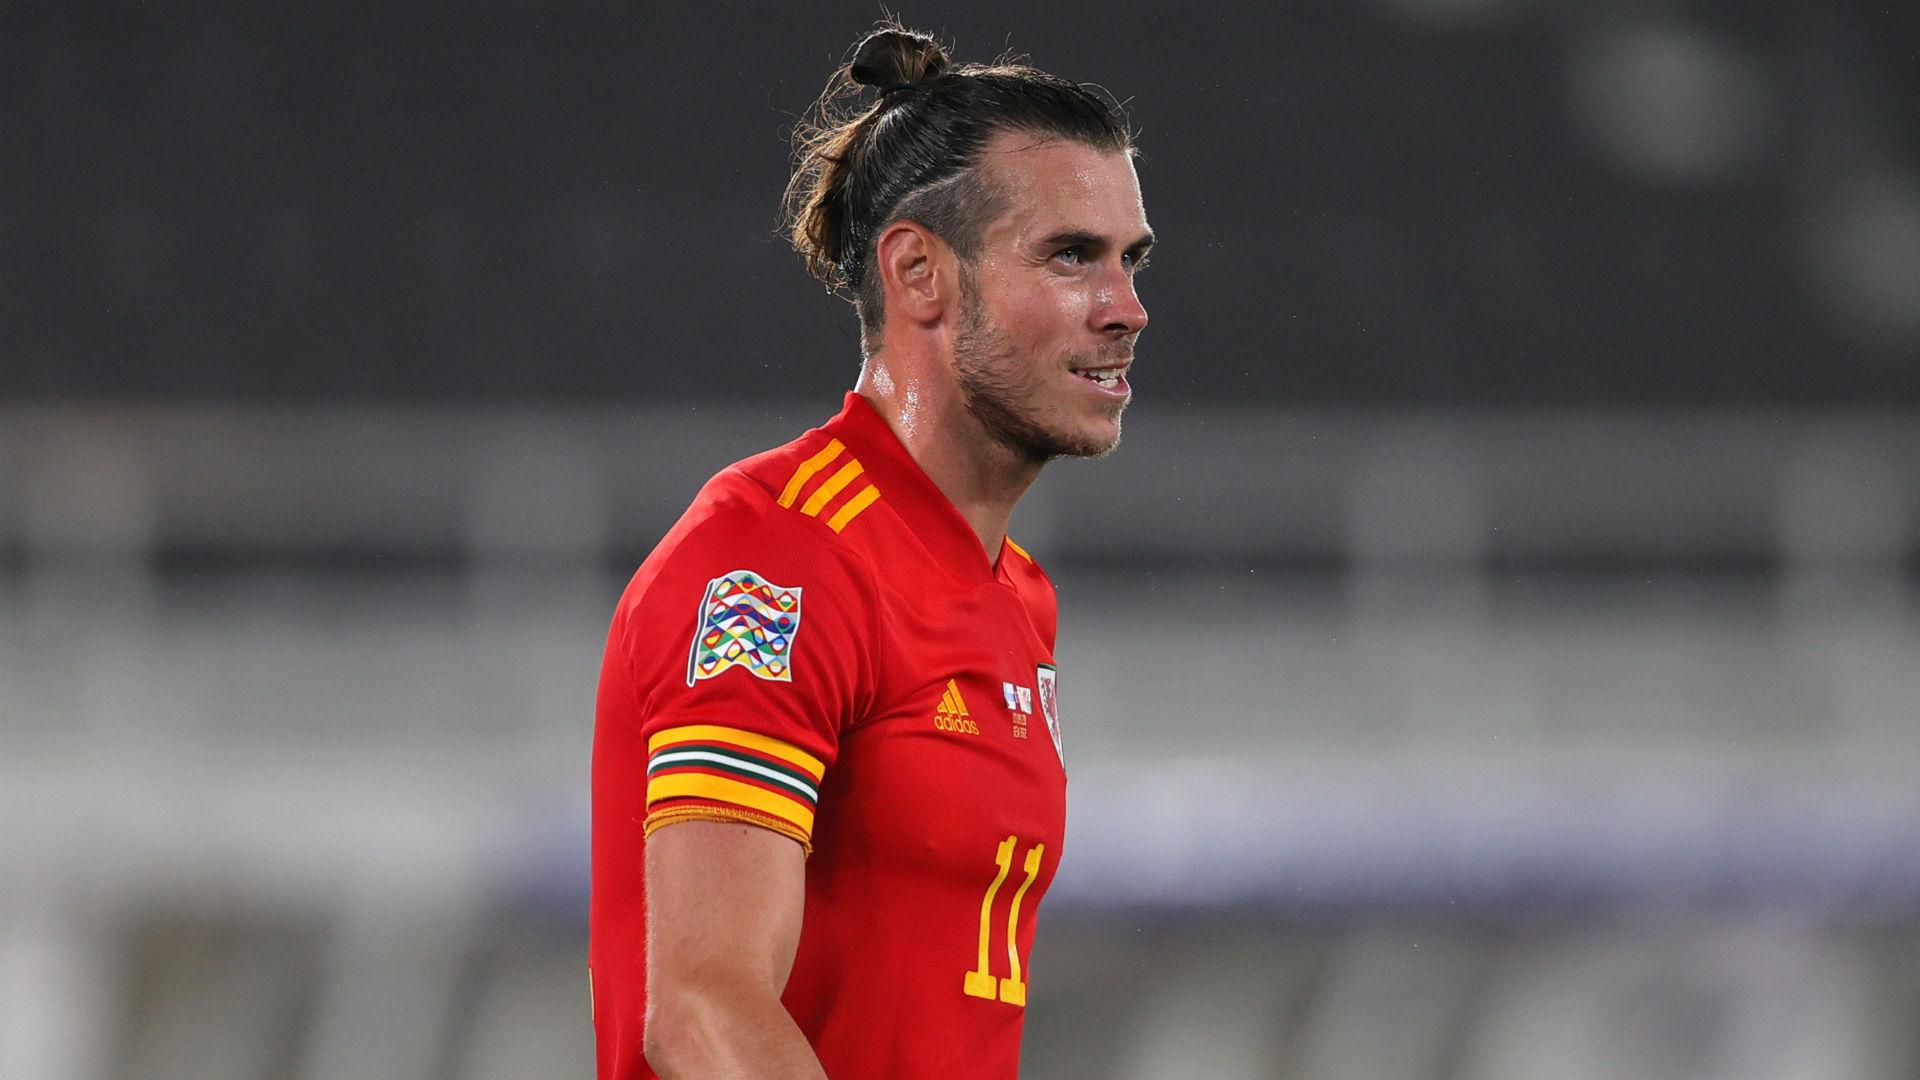 Finland 0-1 Wales: Moore nets winner as Bale lasts just 45 minutes